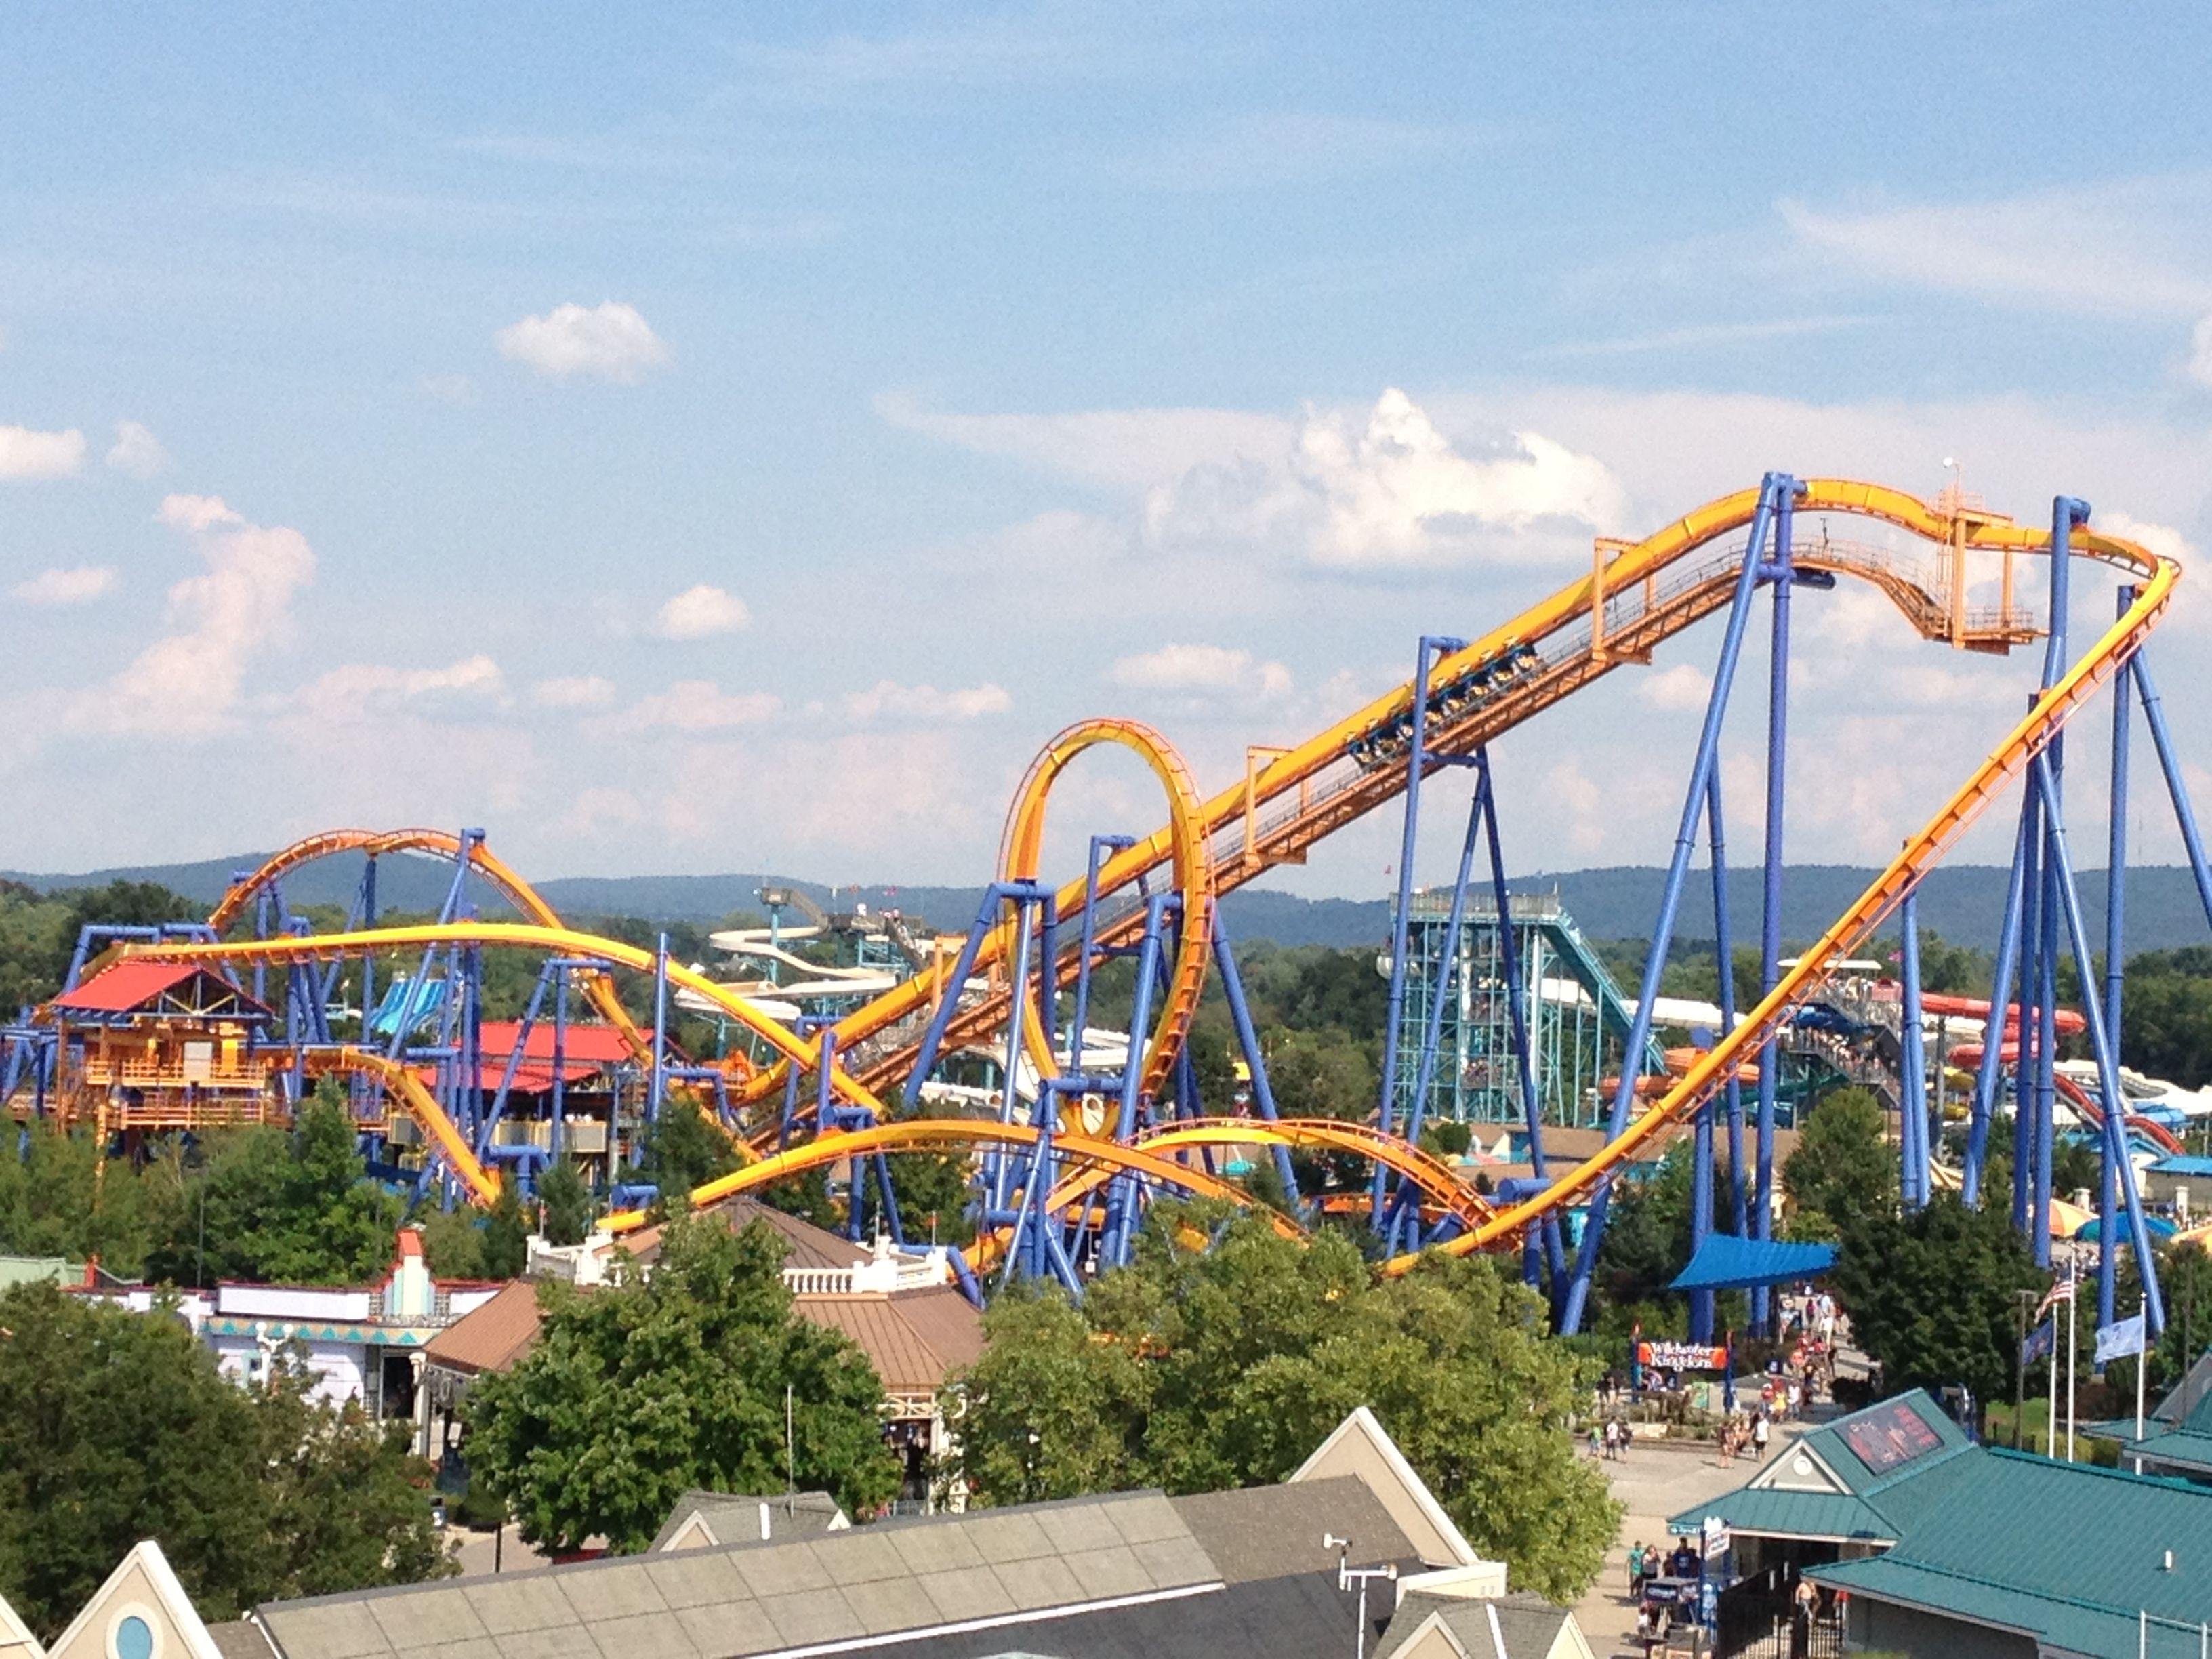 Dorney Park and Wildwater Kingdom - Great family fun near home! 20 minutes from home and have never been!